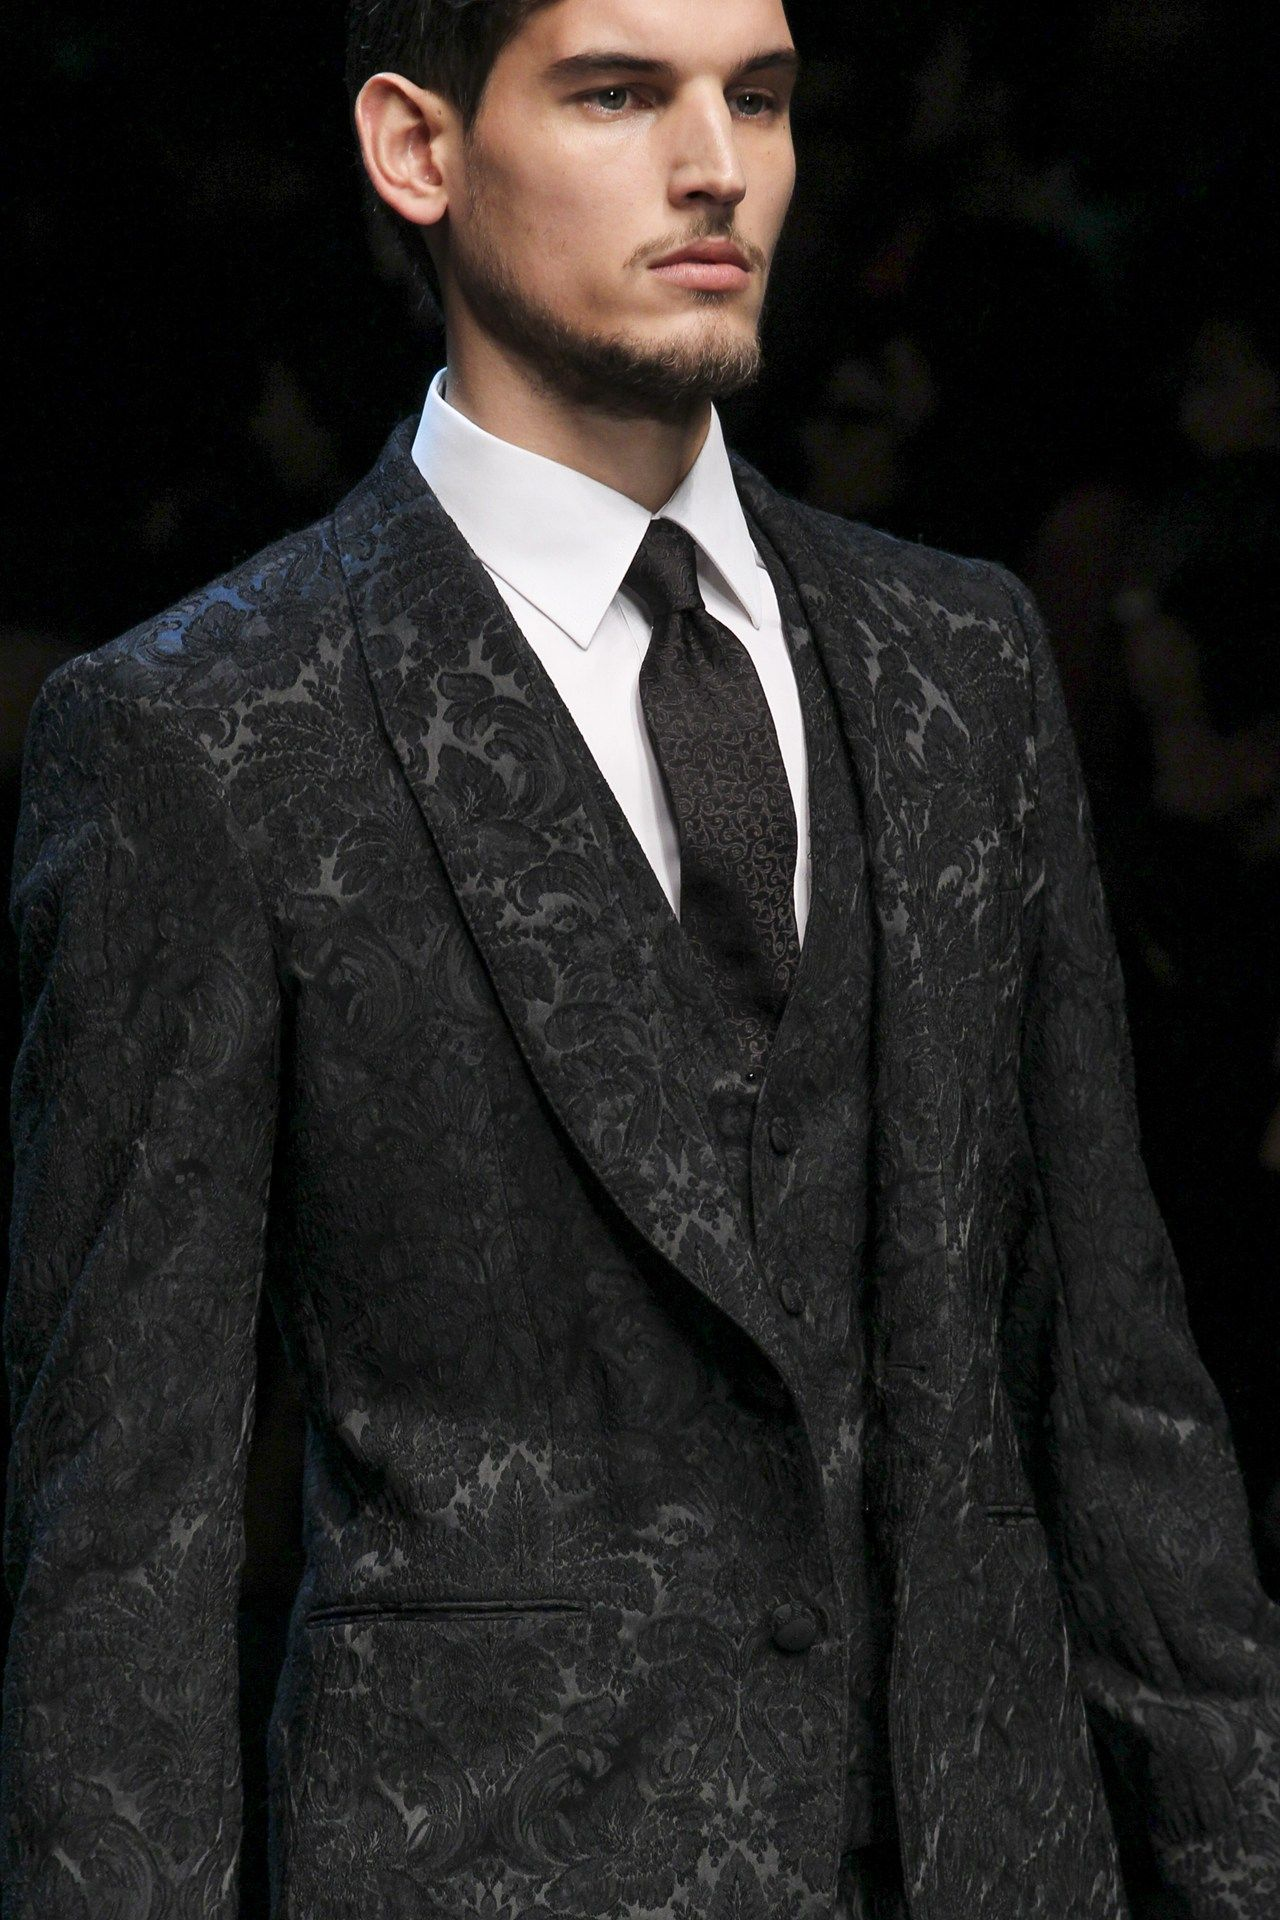 Sumptuous Dolce Gabbana A W 15 Dolce Gabbana Broccato Menssuit Luxury Menswear Mensfashion Dolce And Gabbana Man Blazers For Men Mens Designer Fashion